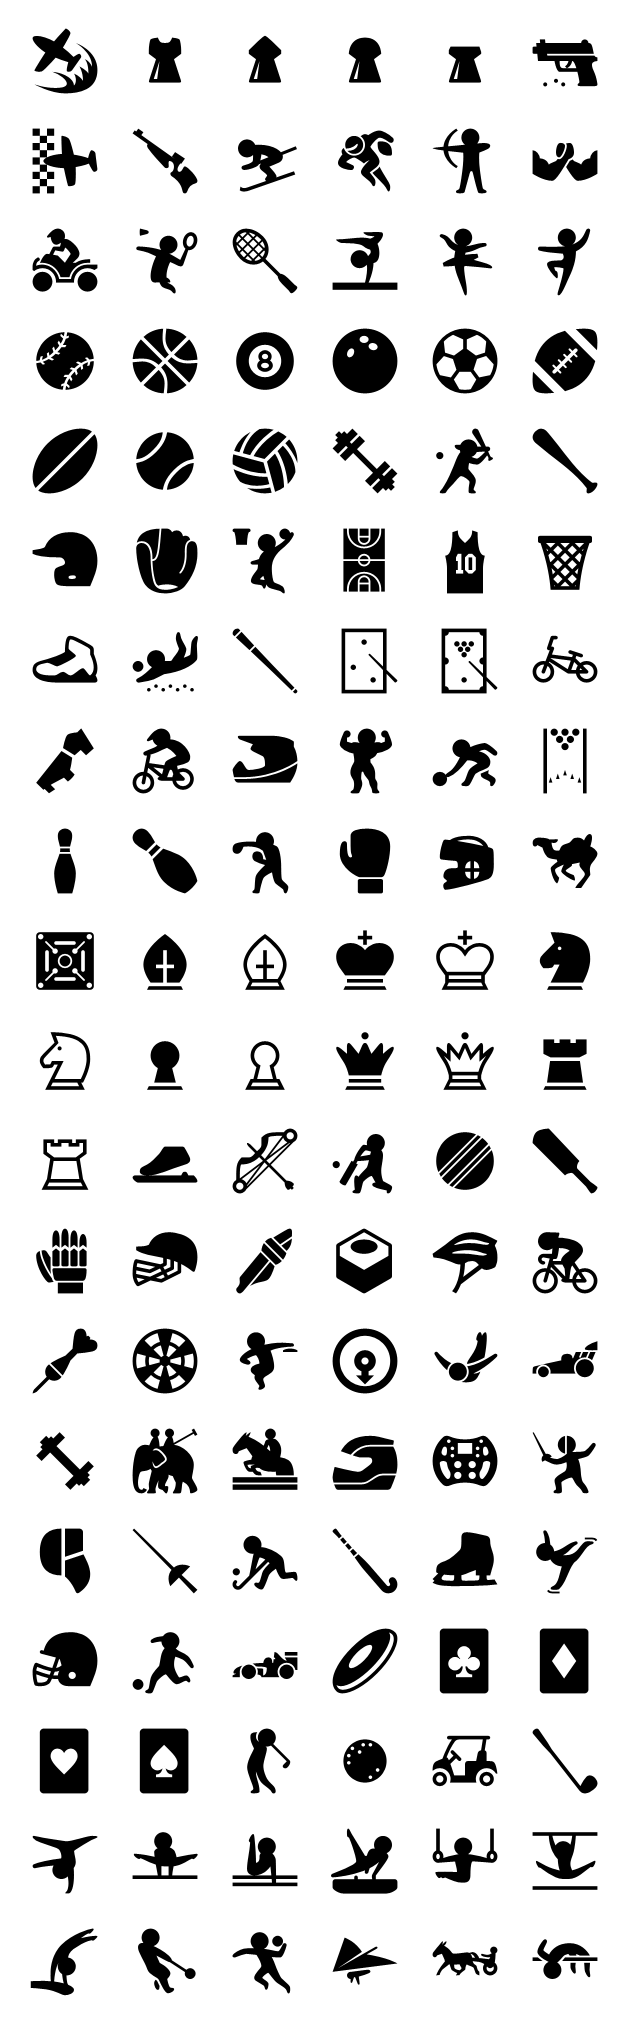 Olympic pictograms athens 2004 codes symbols and charts olympic pictograms athens 2004 codes symbols and charts pinterest black figure pictogram and athens biocorpaavc